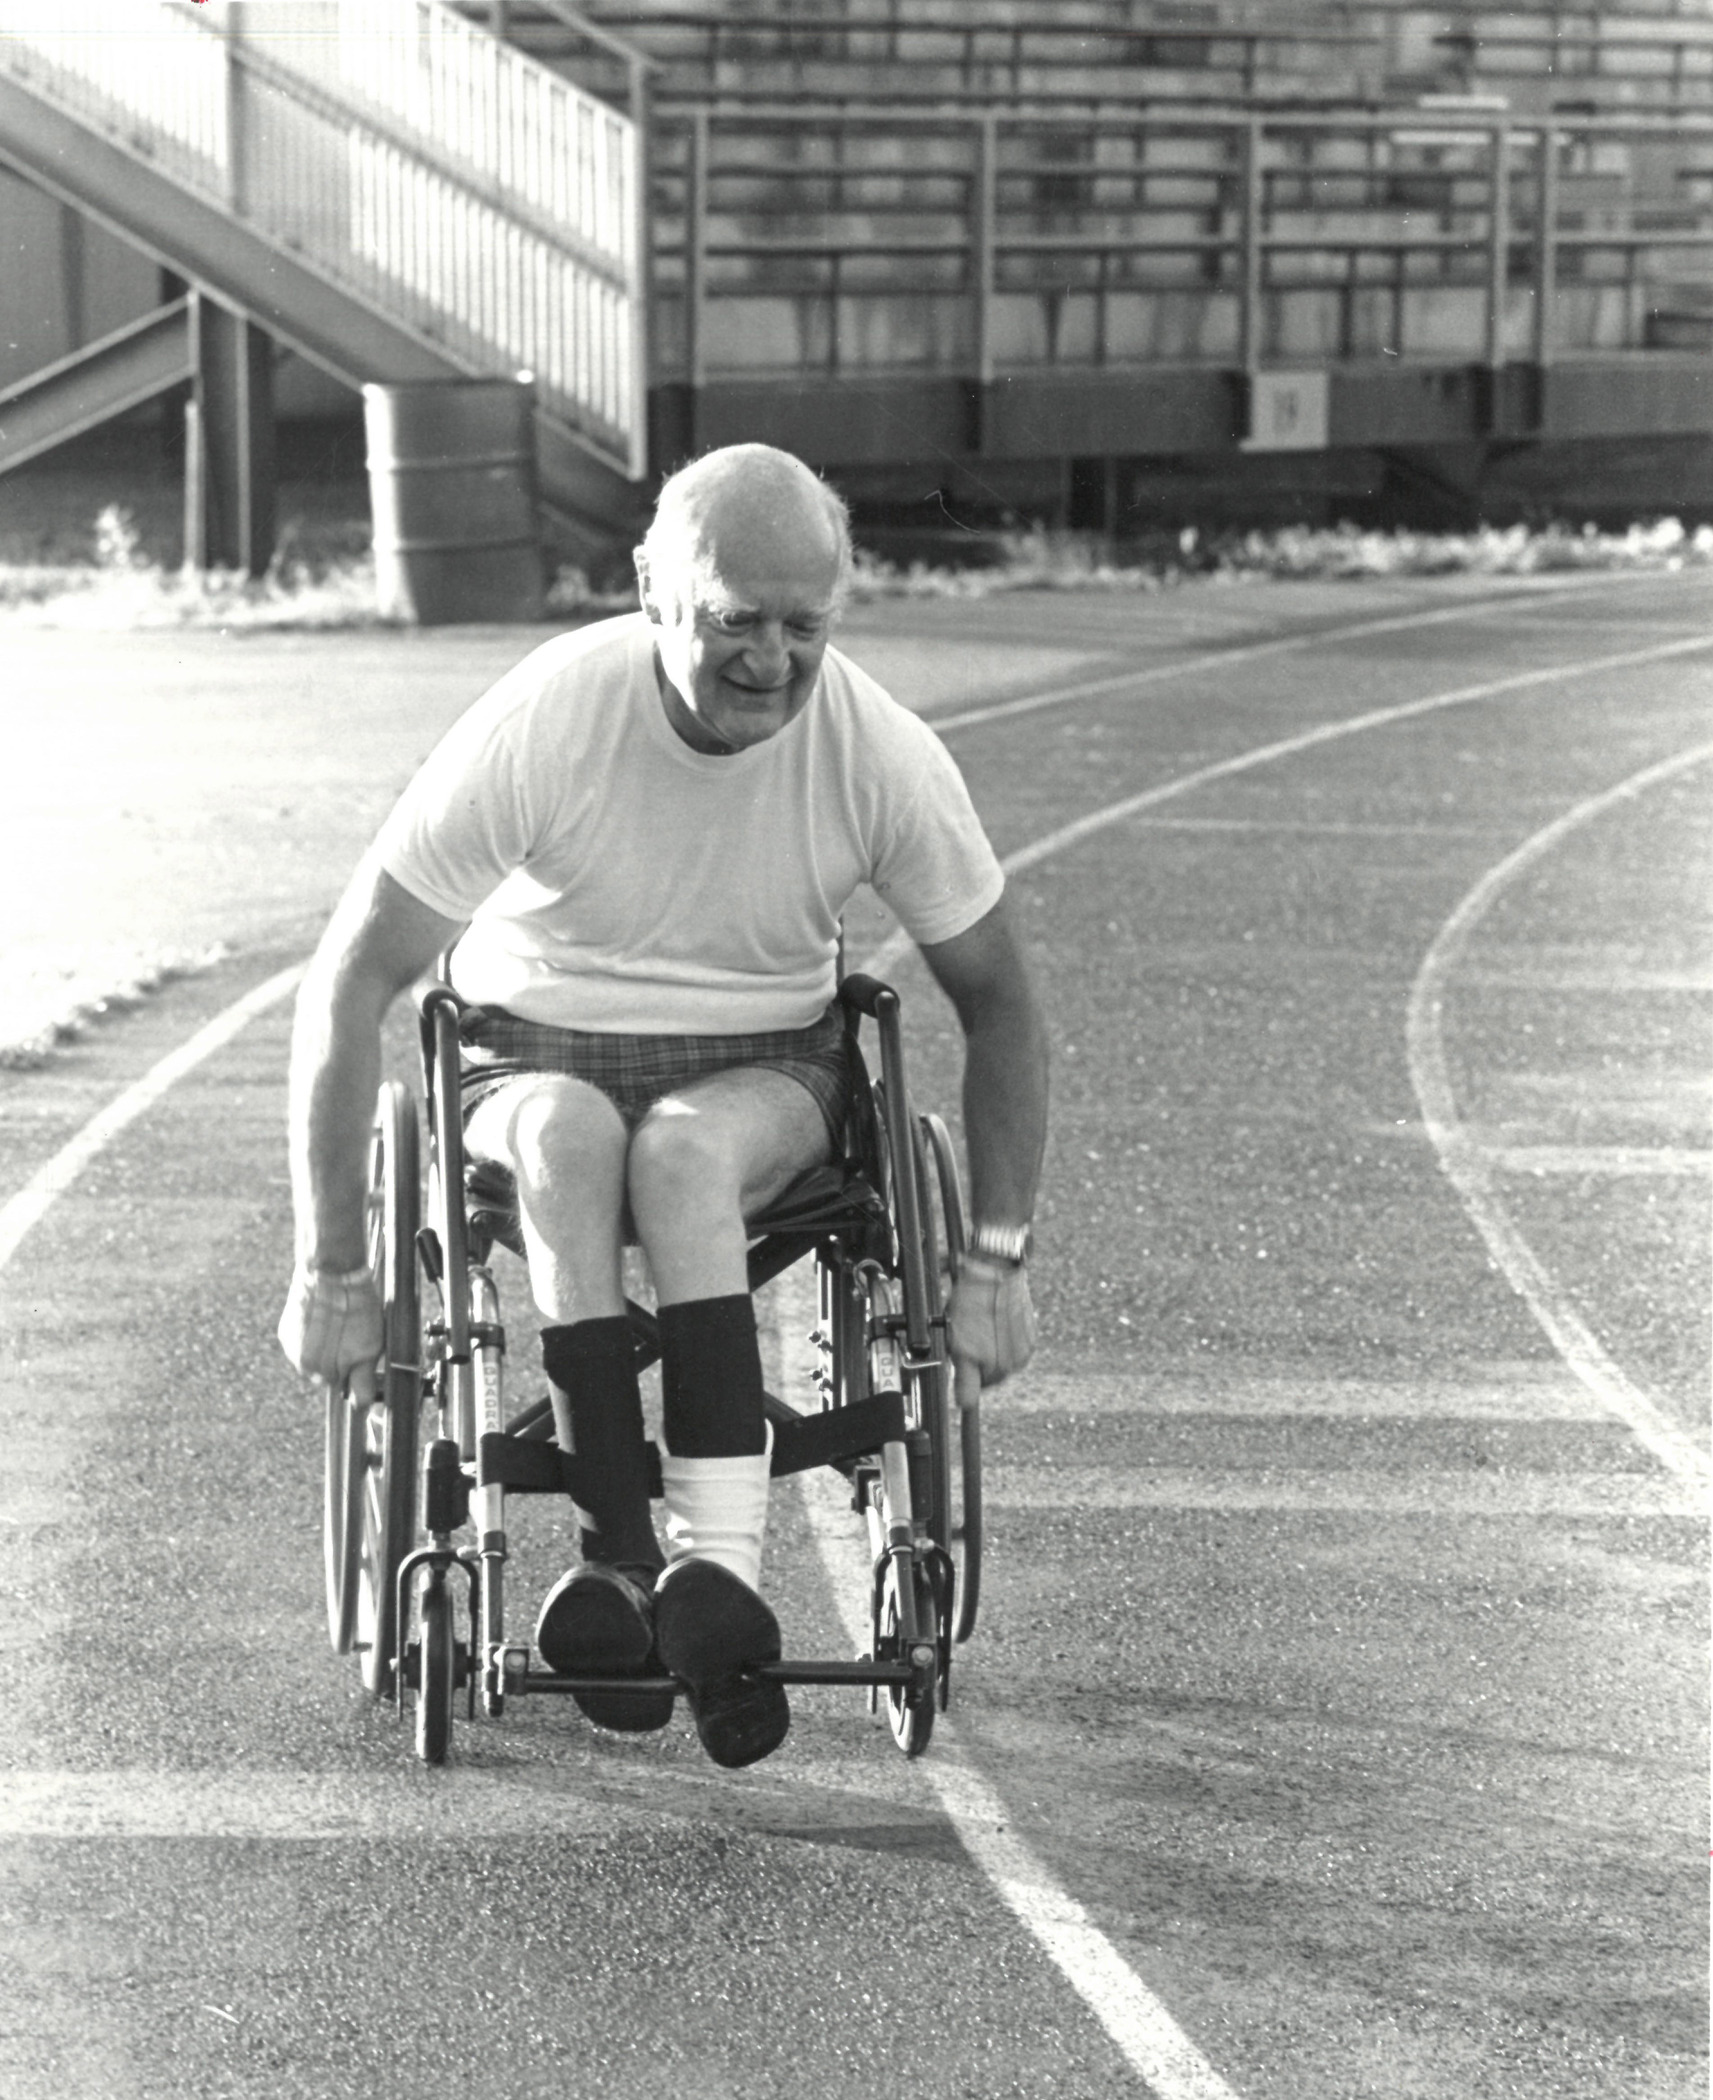 David Eckels photographed on Memorial Track Field for the Dec. 1985 issue of the Dartmouth Alumni Magazine.